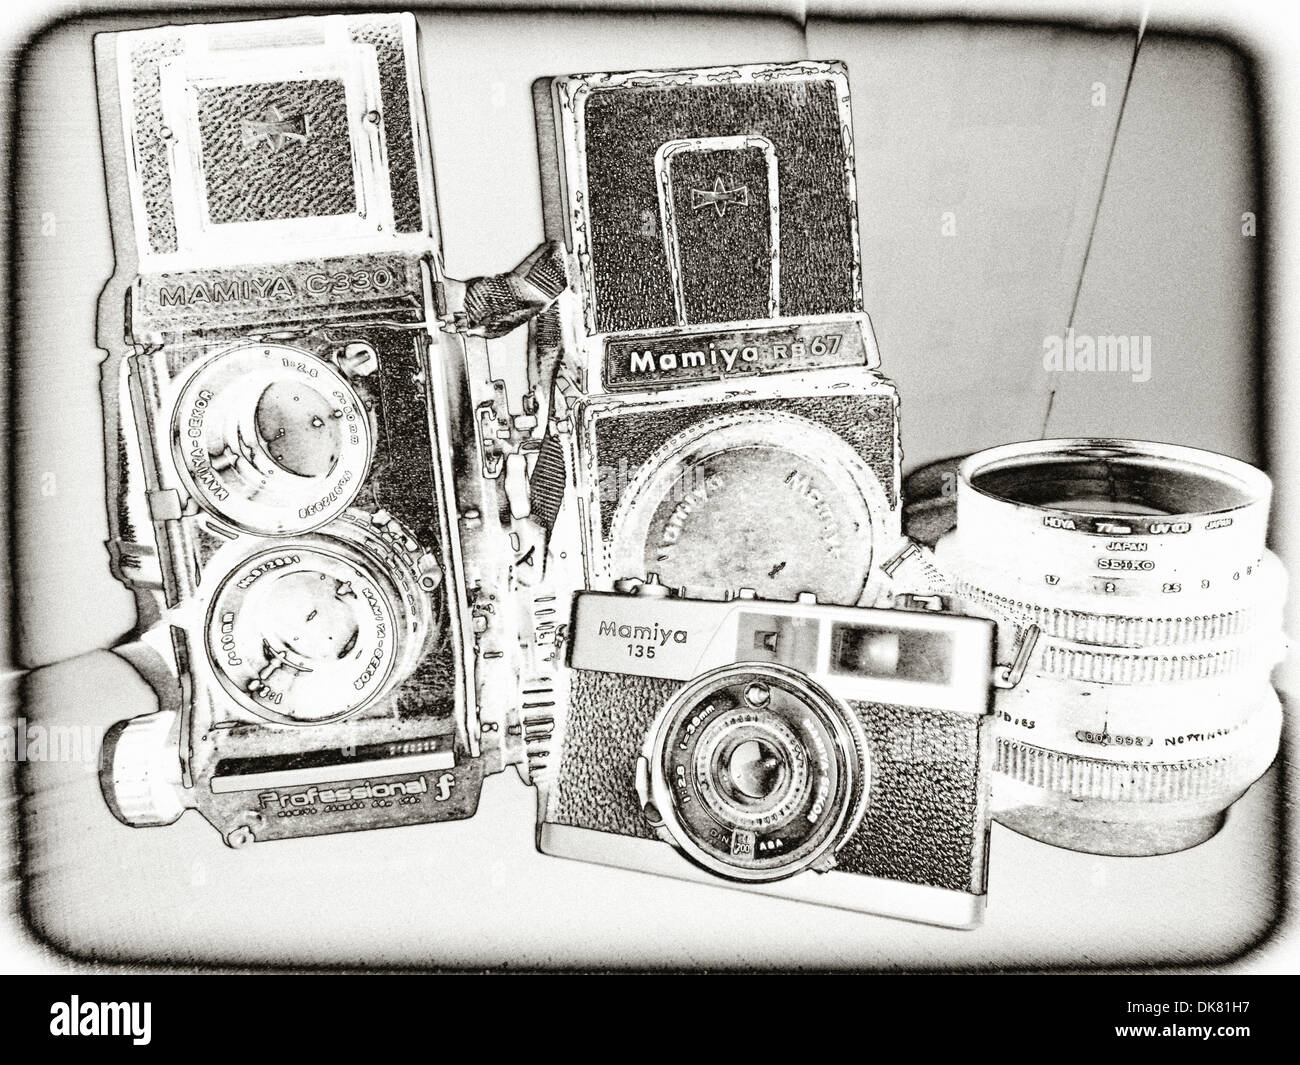 Solarised image of a collection of old, analogue Mamiya cameras and lens - Stock Image